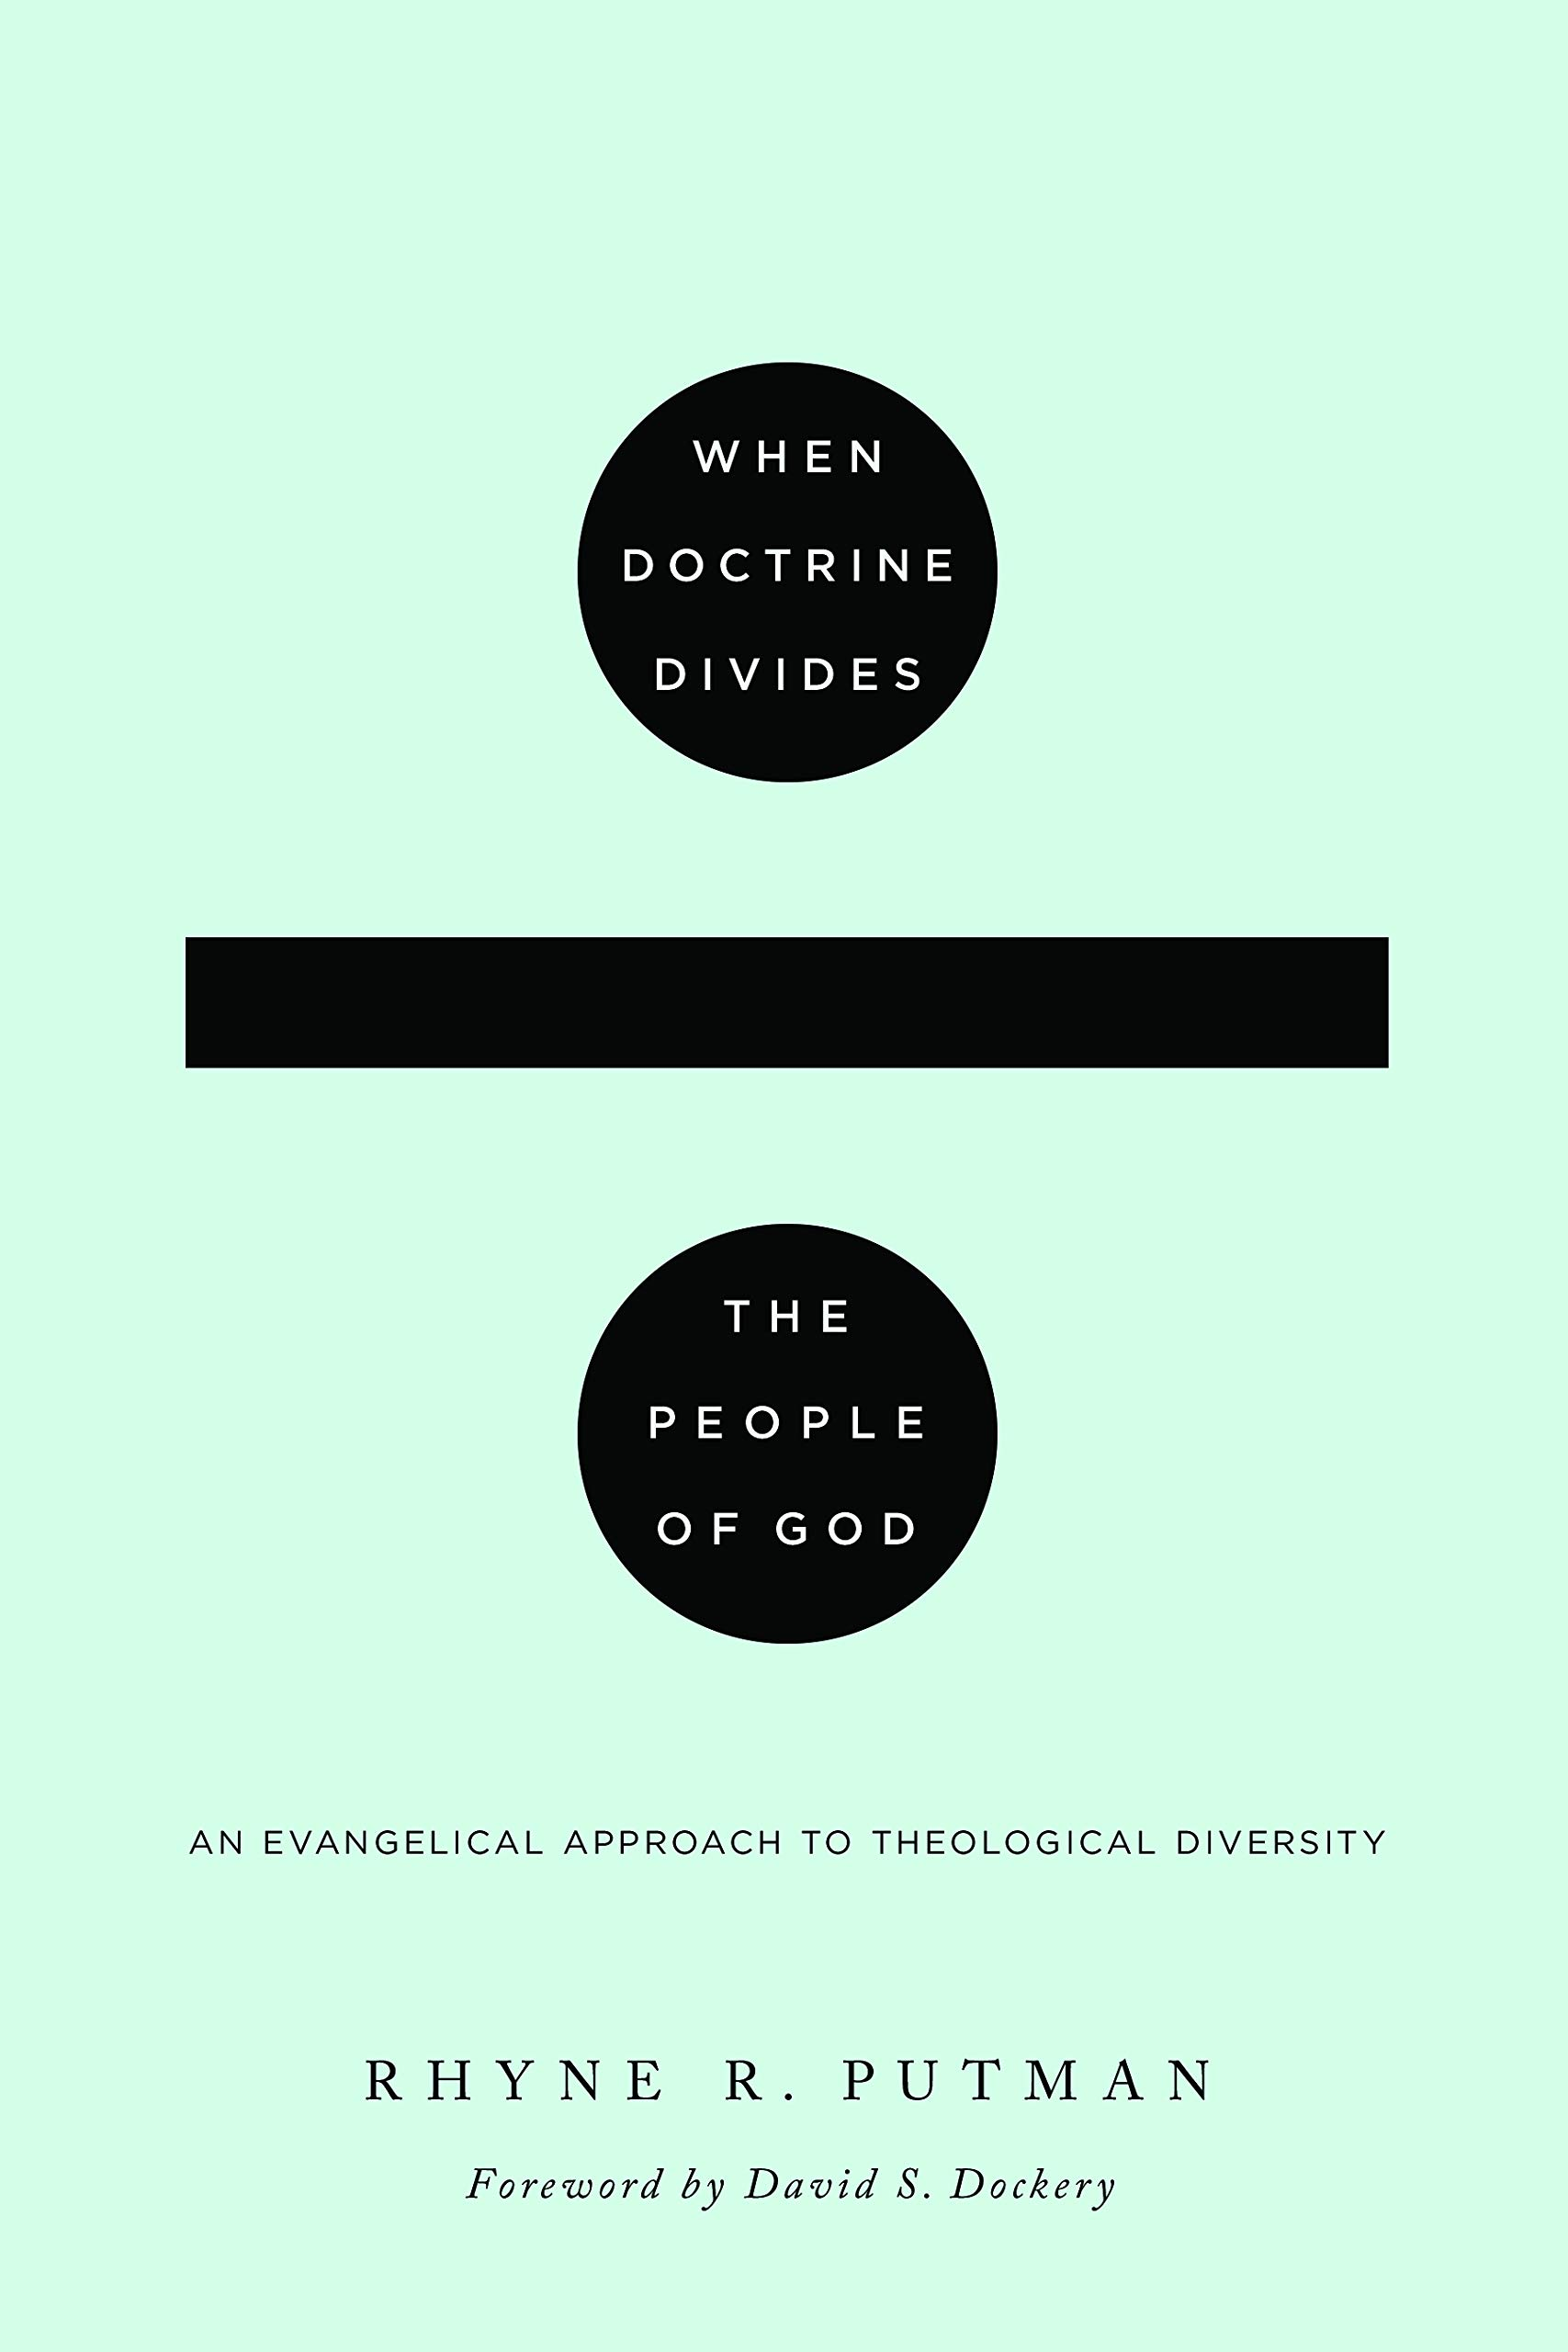 Amazon.com: When Doctrine Divides the People of God: An ...